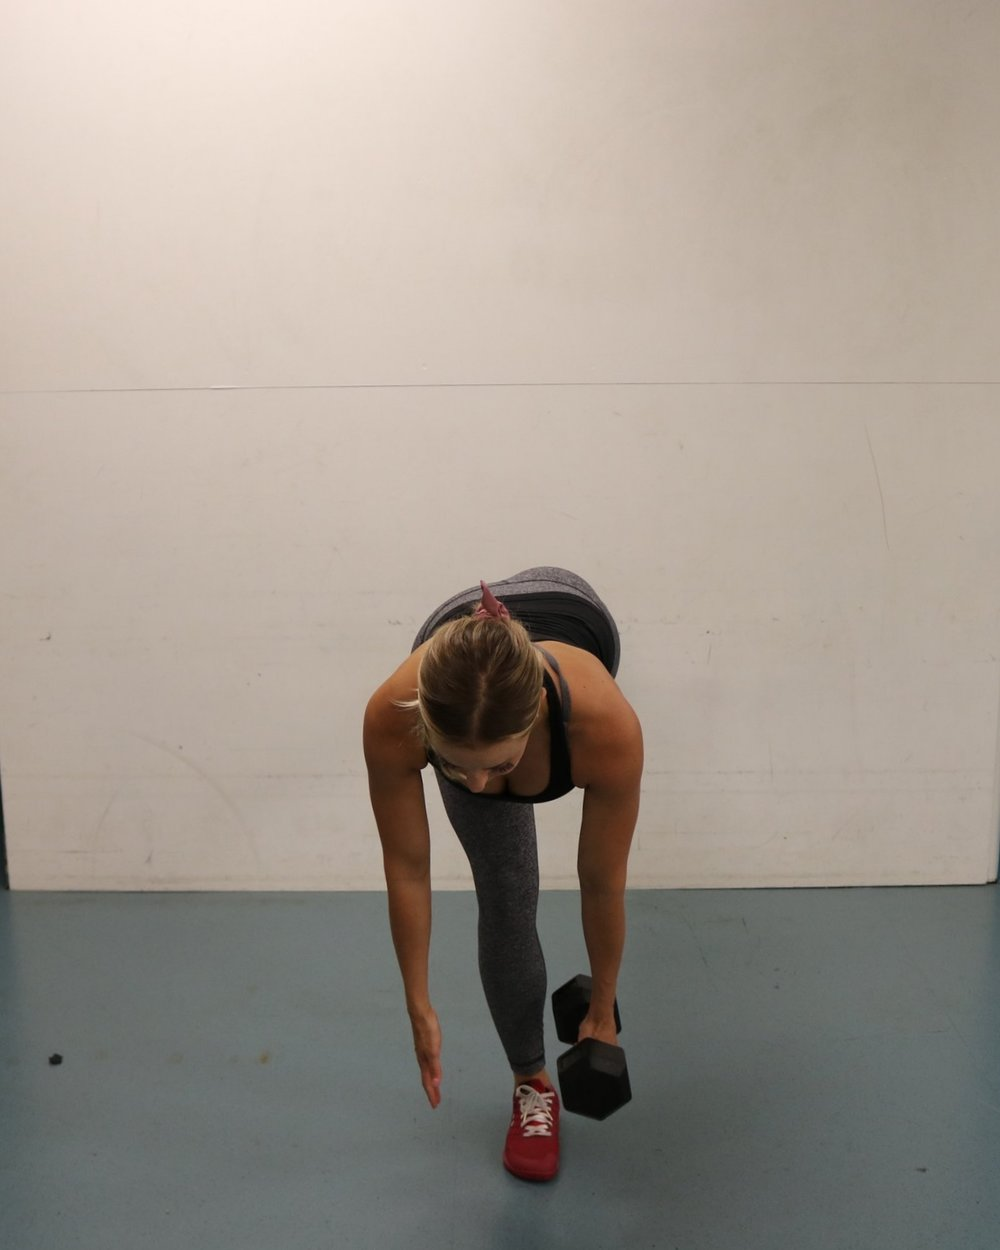 Bottom position of the single leg RDL - keep hips squared towards the floor